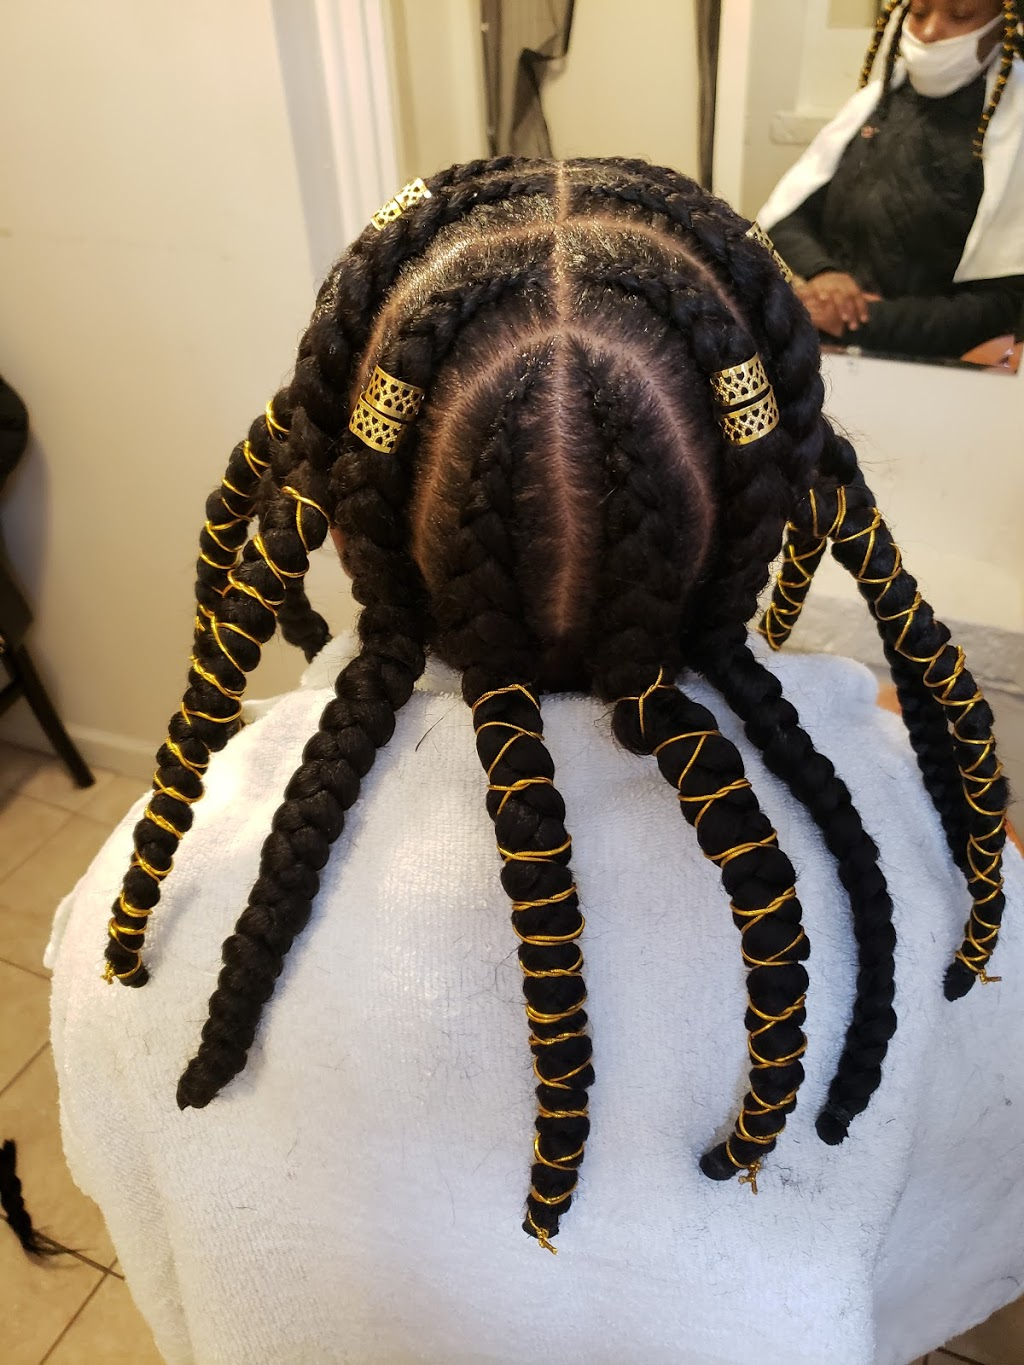 Flakky African Hair Braiding - hair care  | Photo 6 of 10 | Address: 253 Broad St, Staten Island, NY 10304, USA | Phone: (347) 371-3645